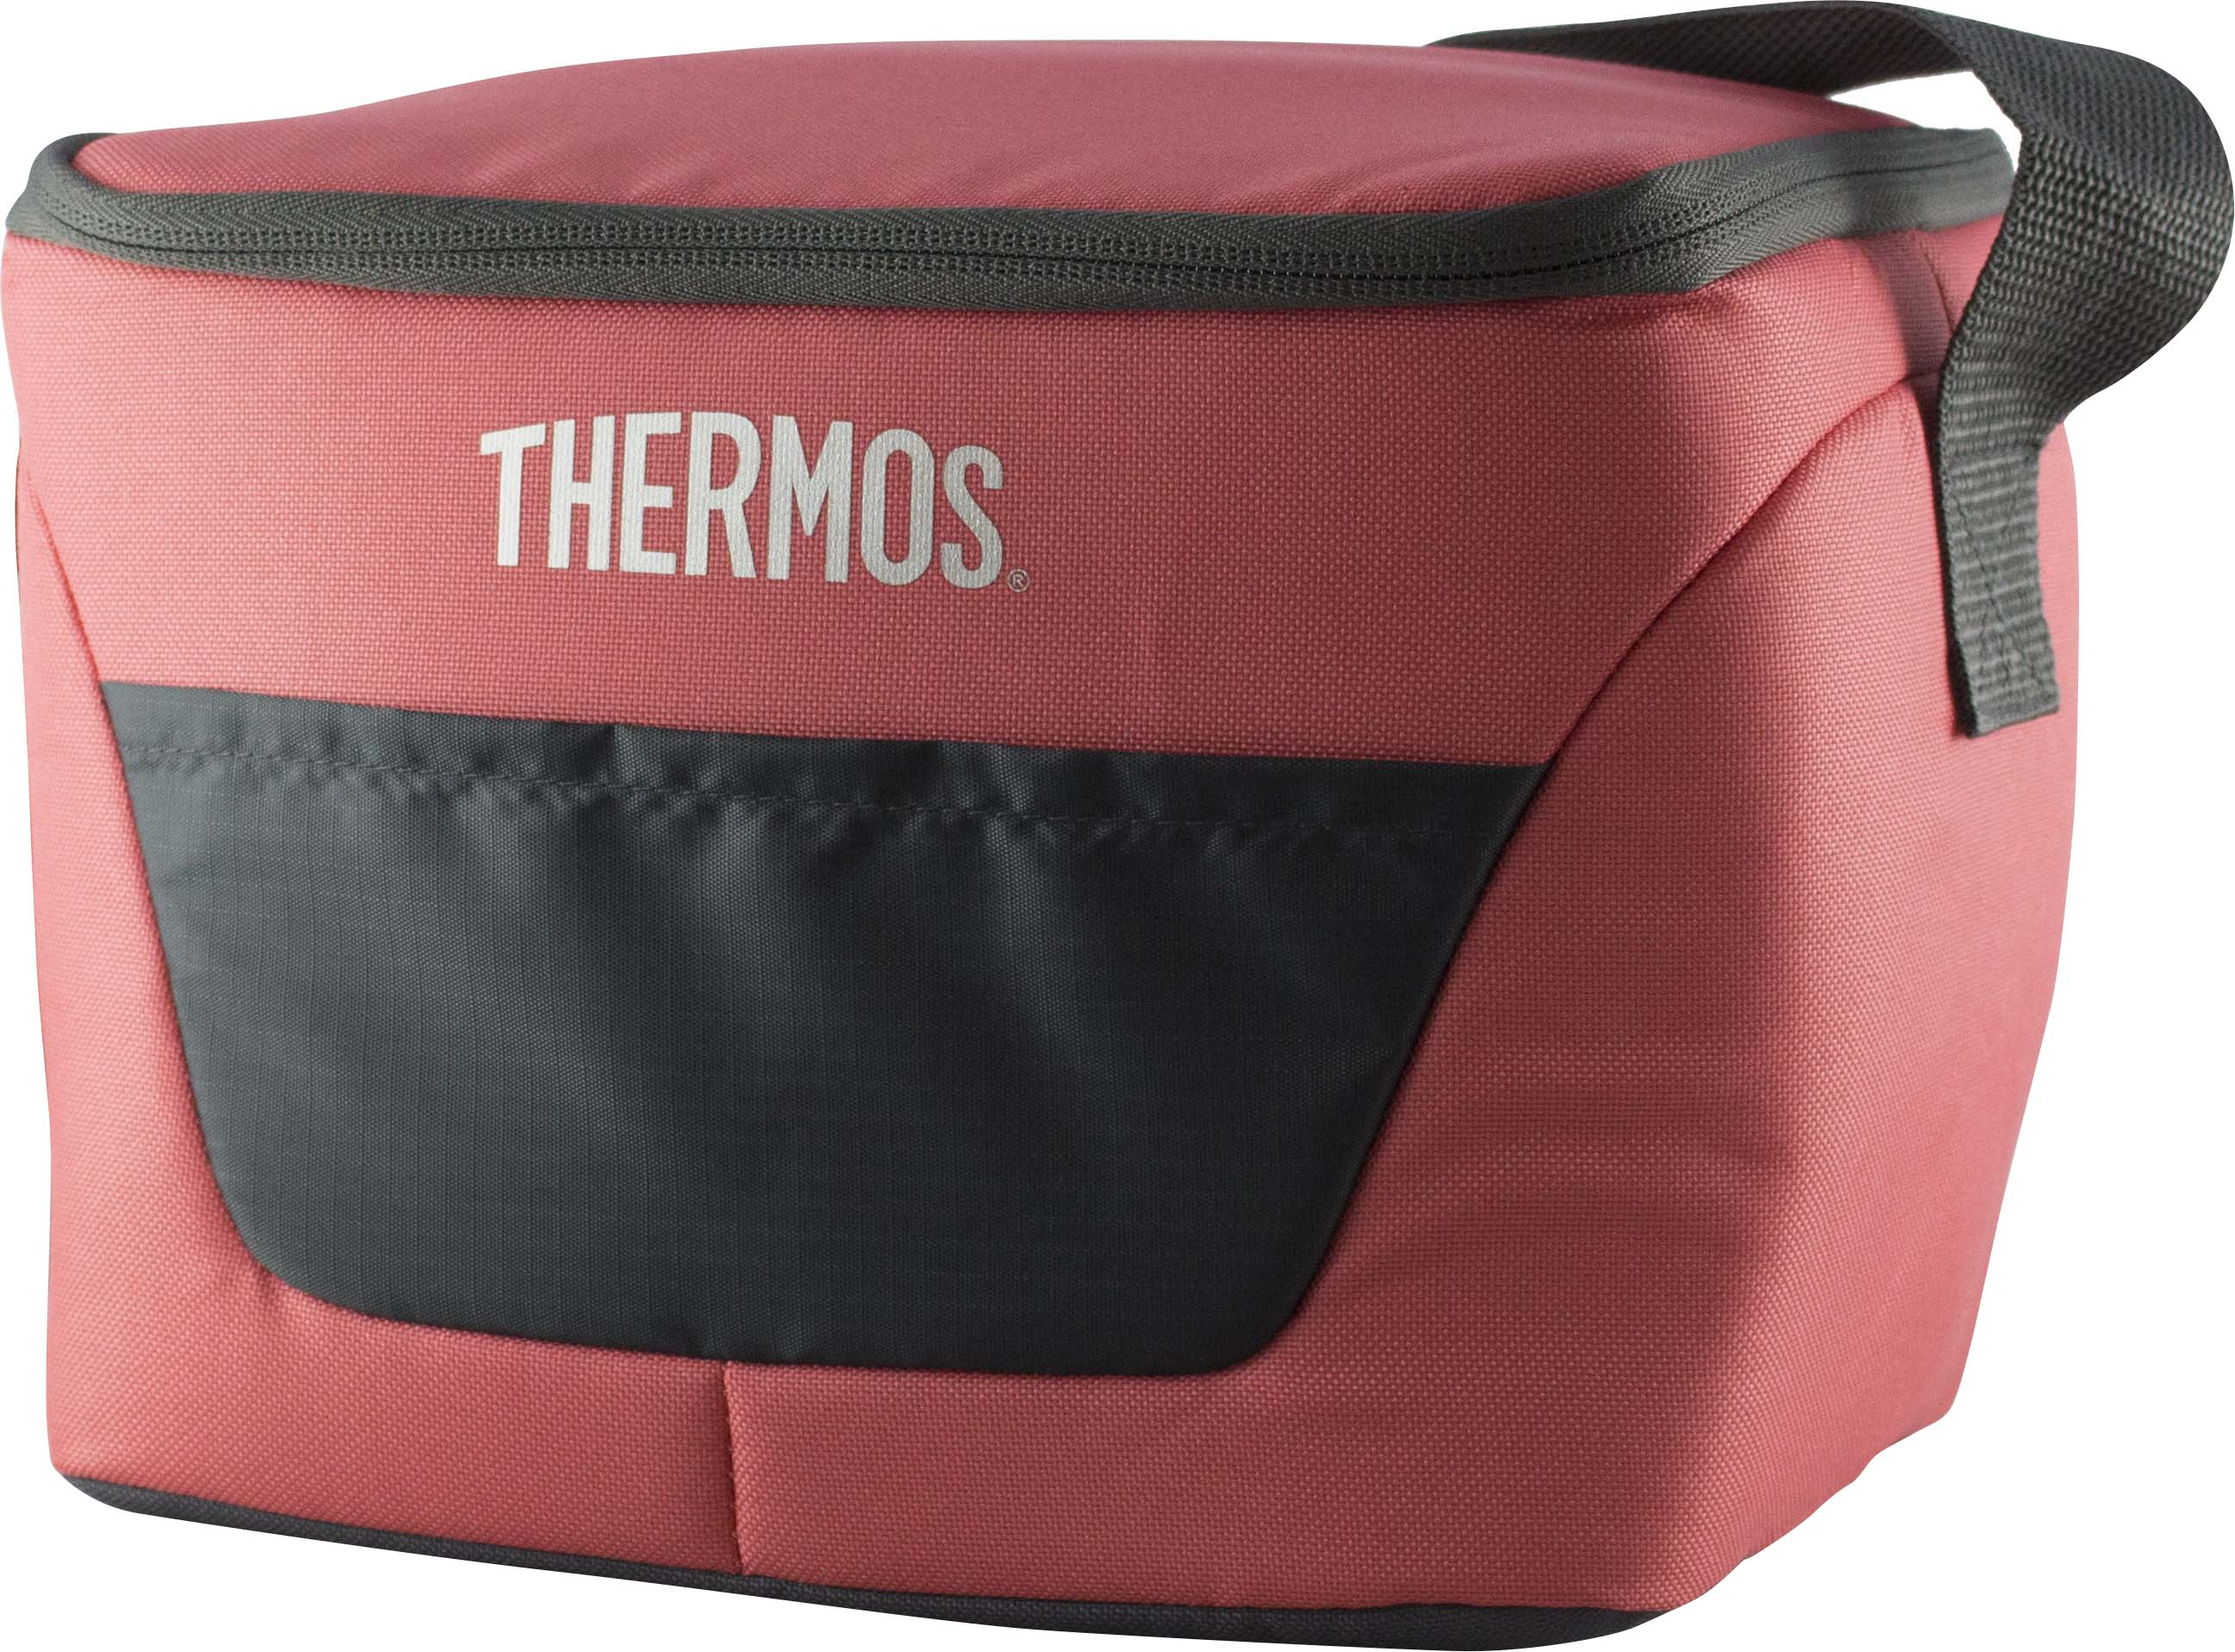 Сумка термос Thermos Classic 9 Can Cooler